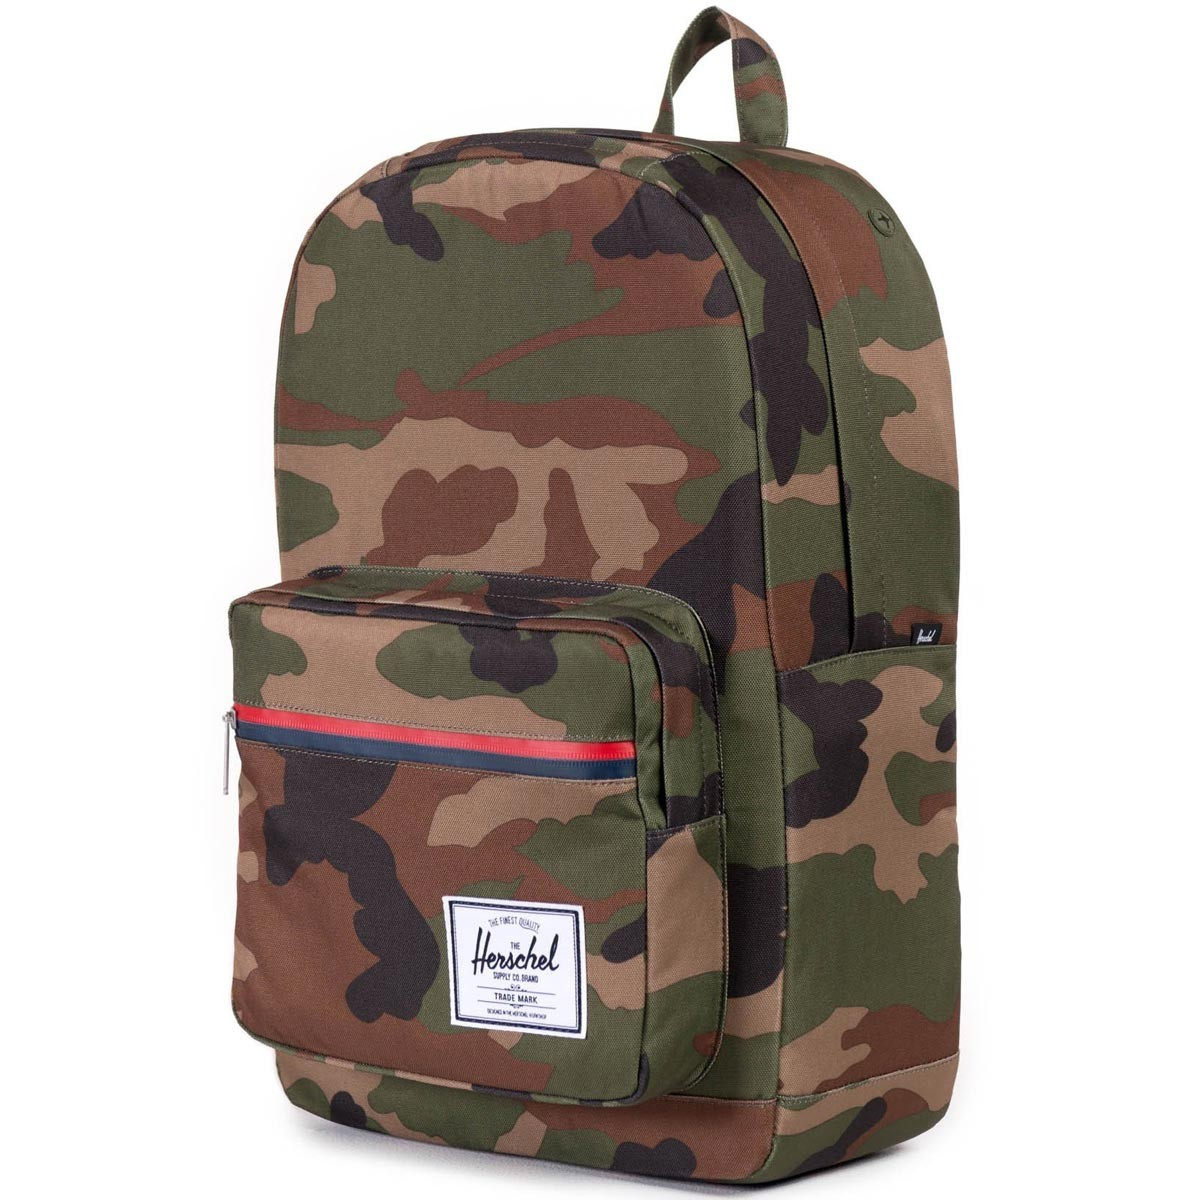 Herschel Pop Quiz Backpack - Camo